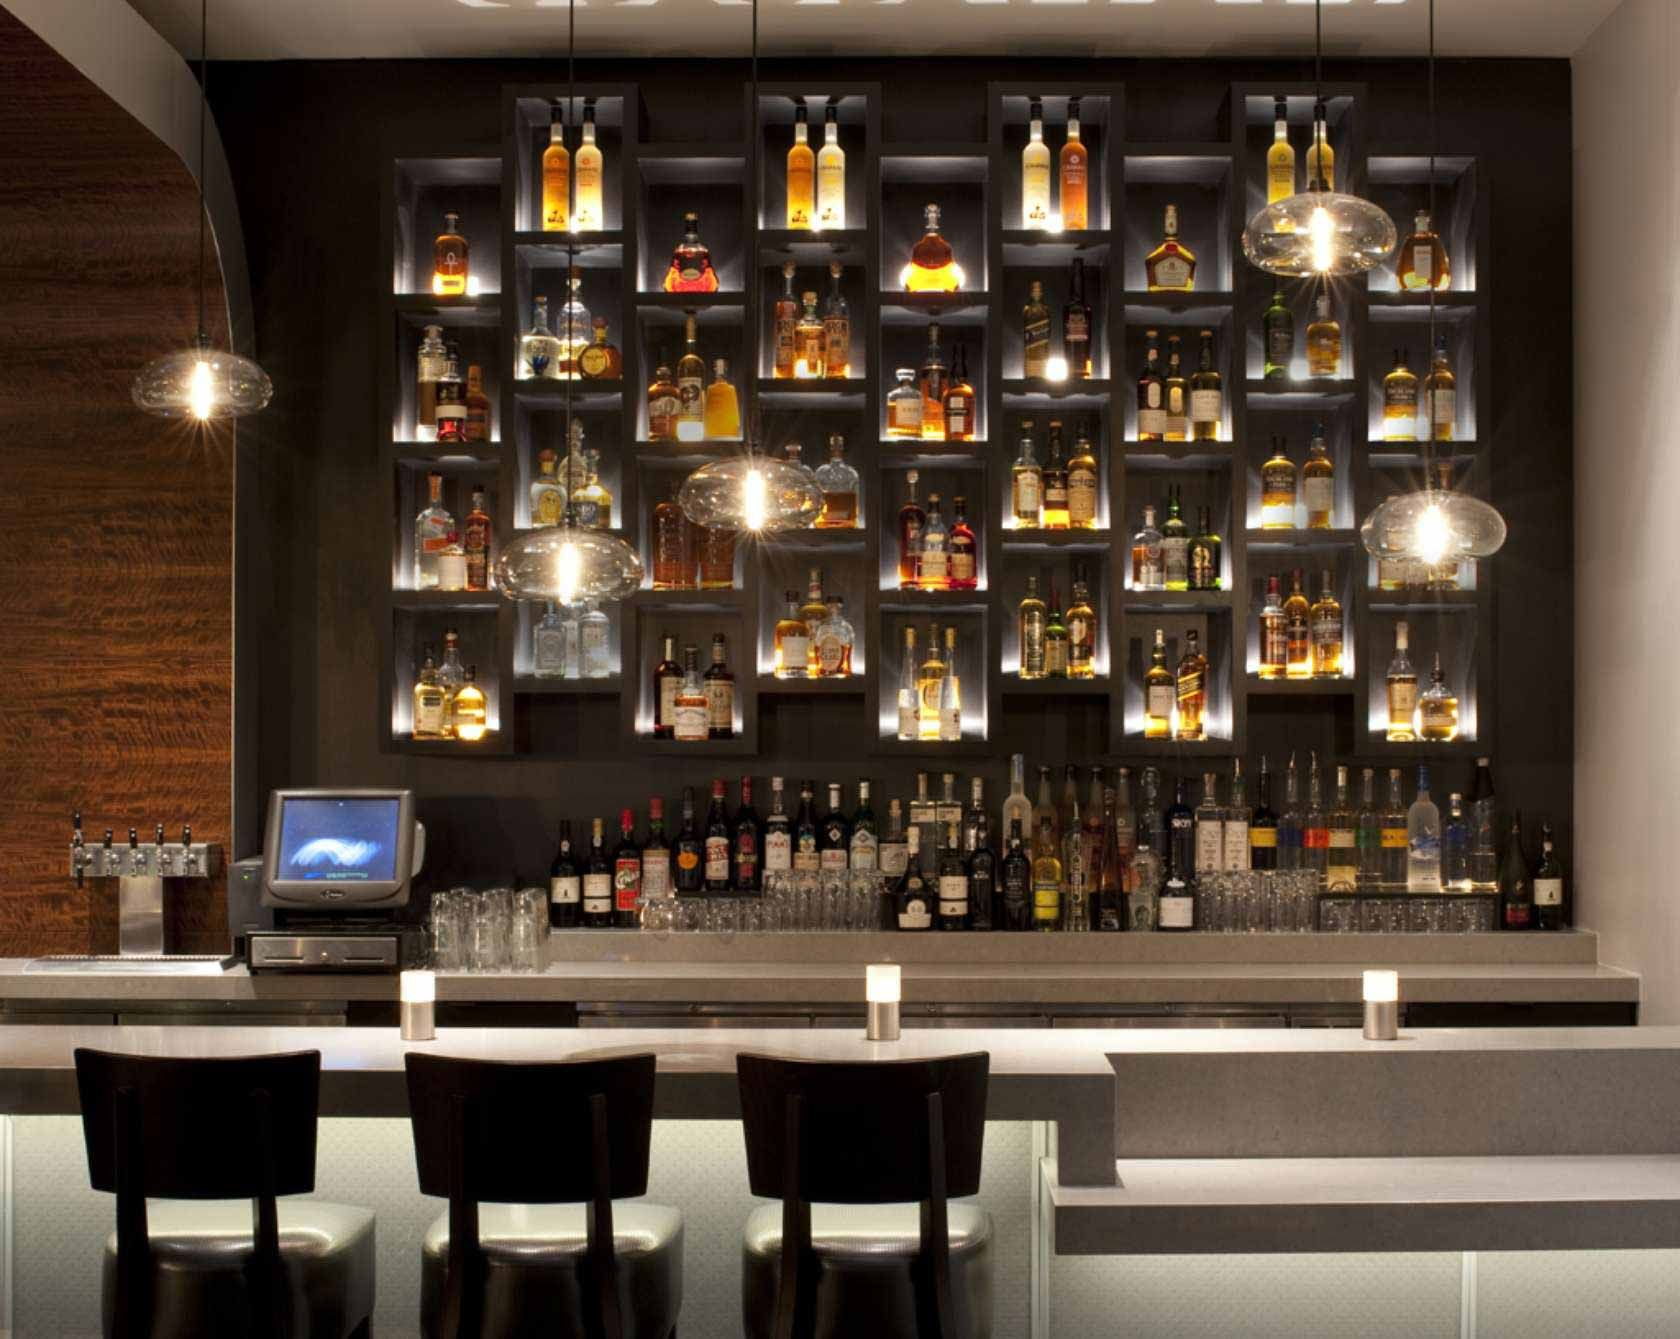 Probably impractical for a small bar but, like the look of the ...